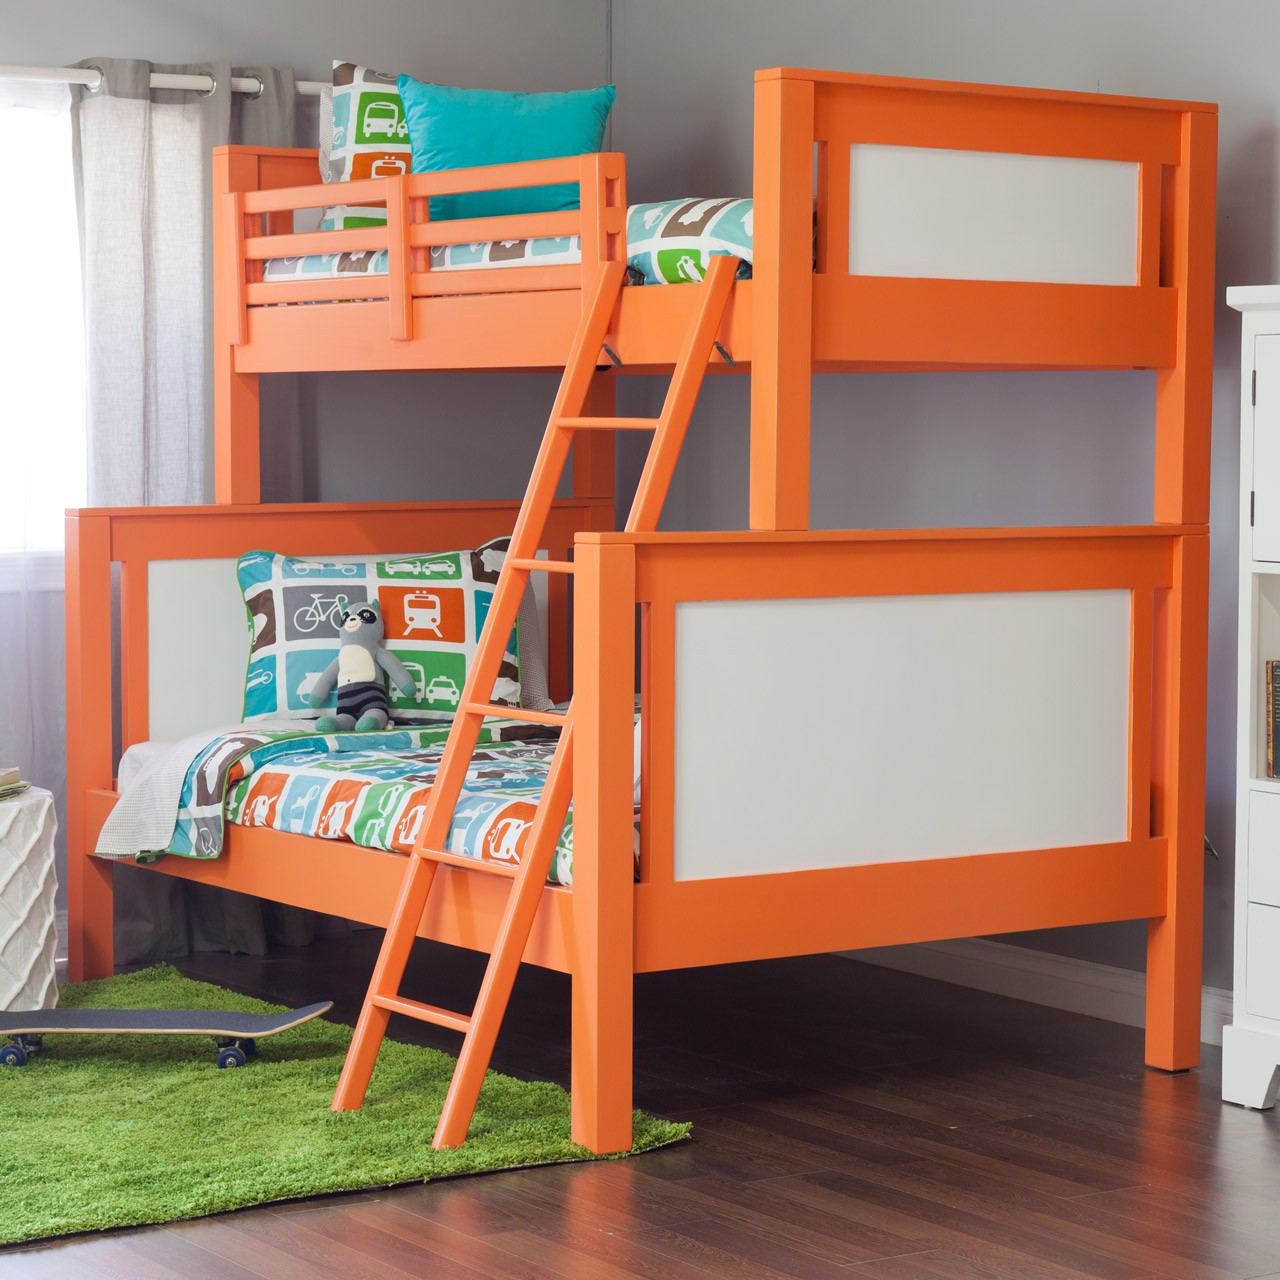 Beau Orange Toddler Bunk Beds With Ladder And Transportation Themed Bedding For  Cozy Boys Bedroom